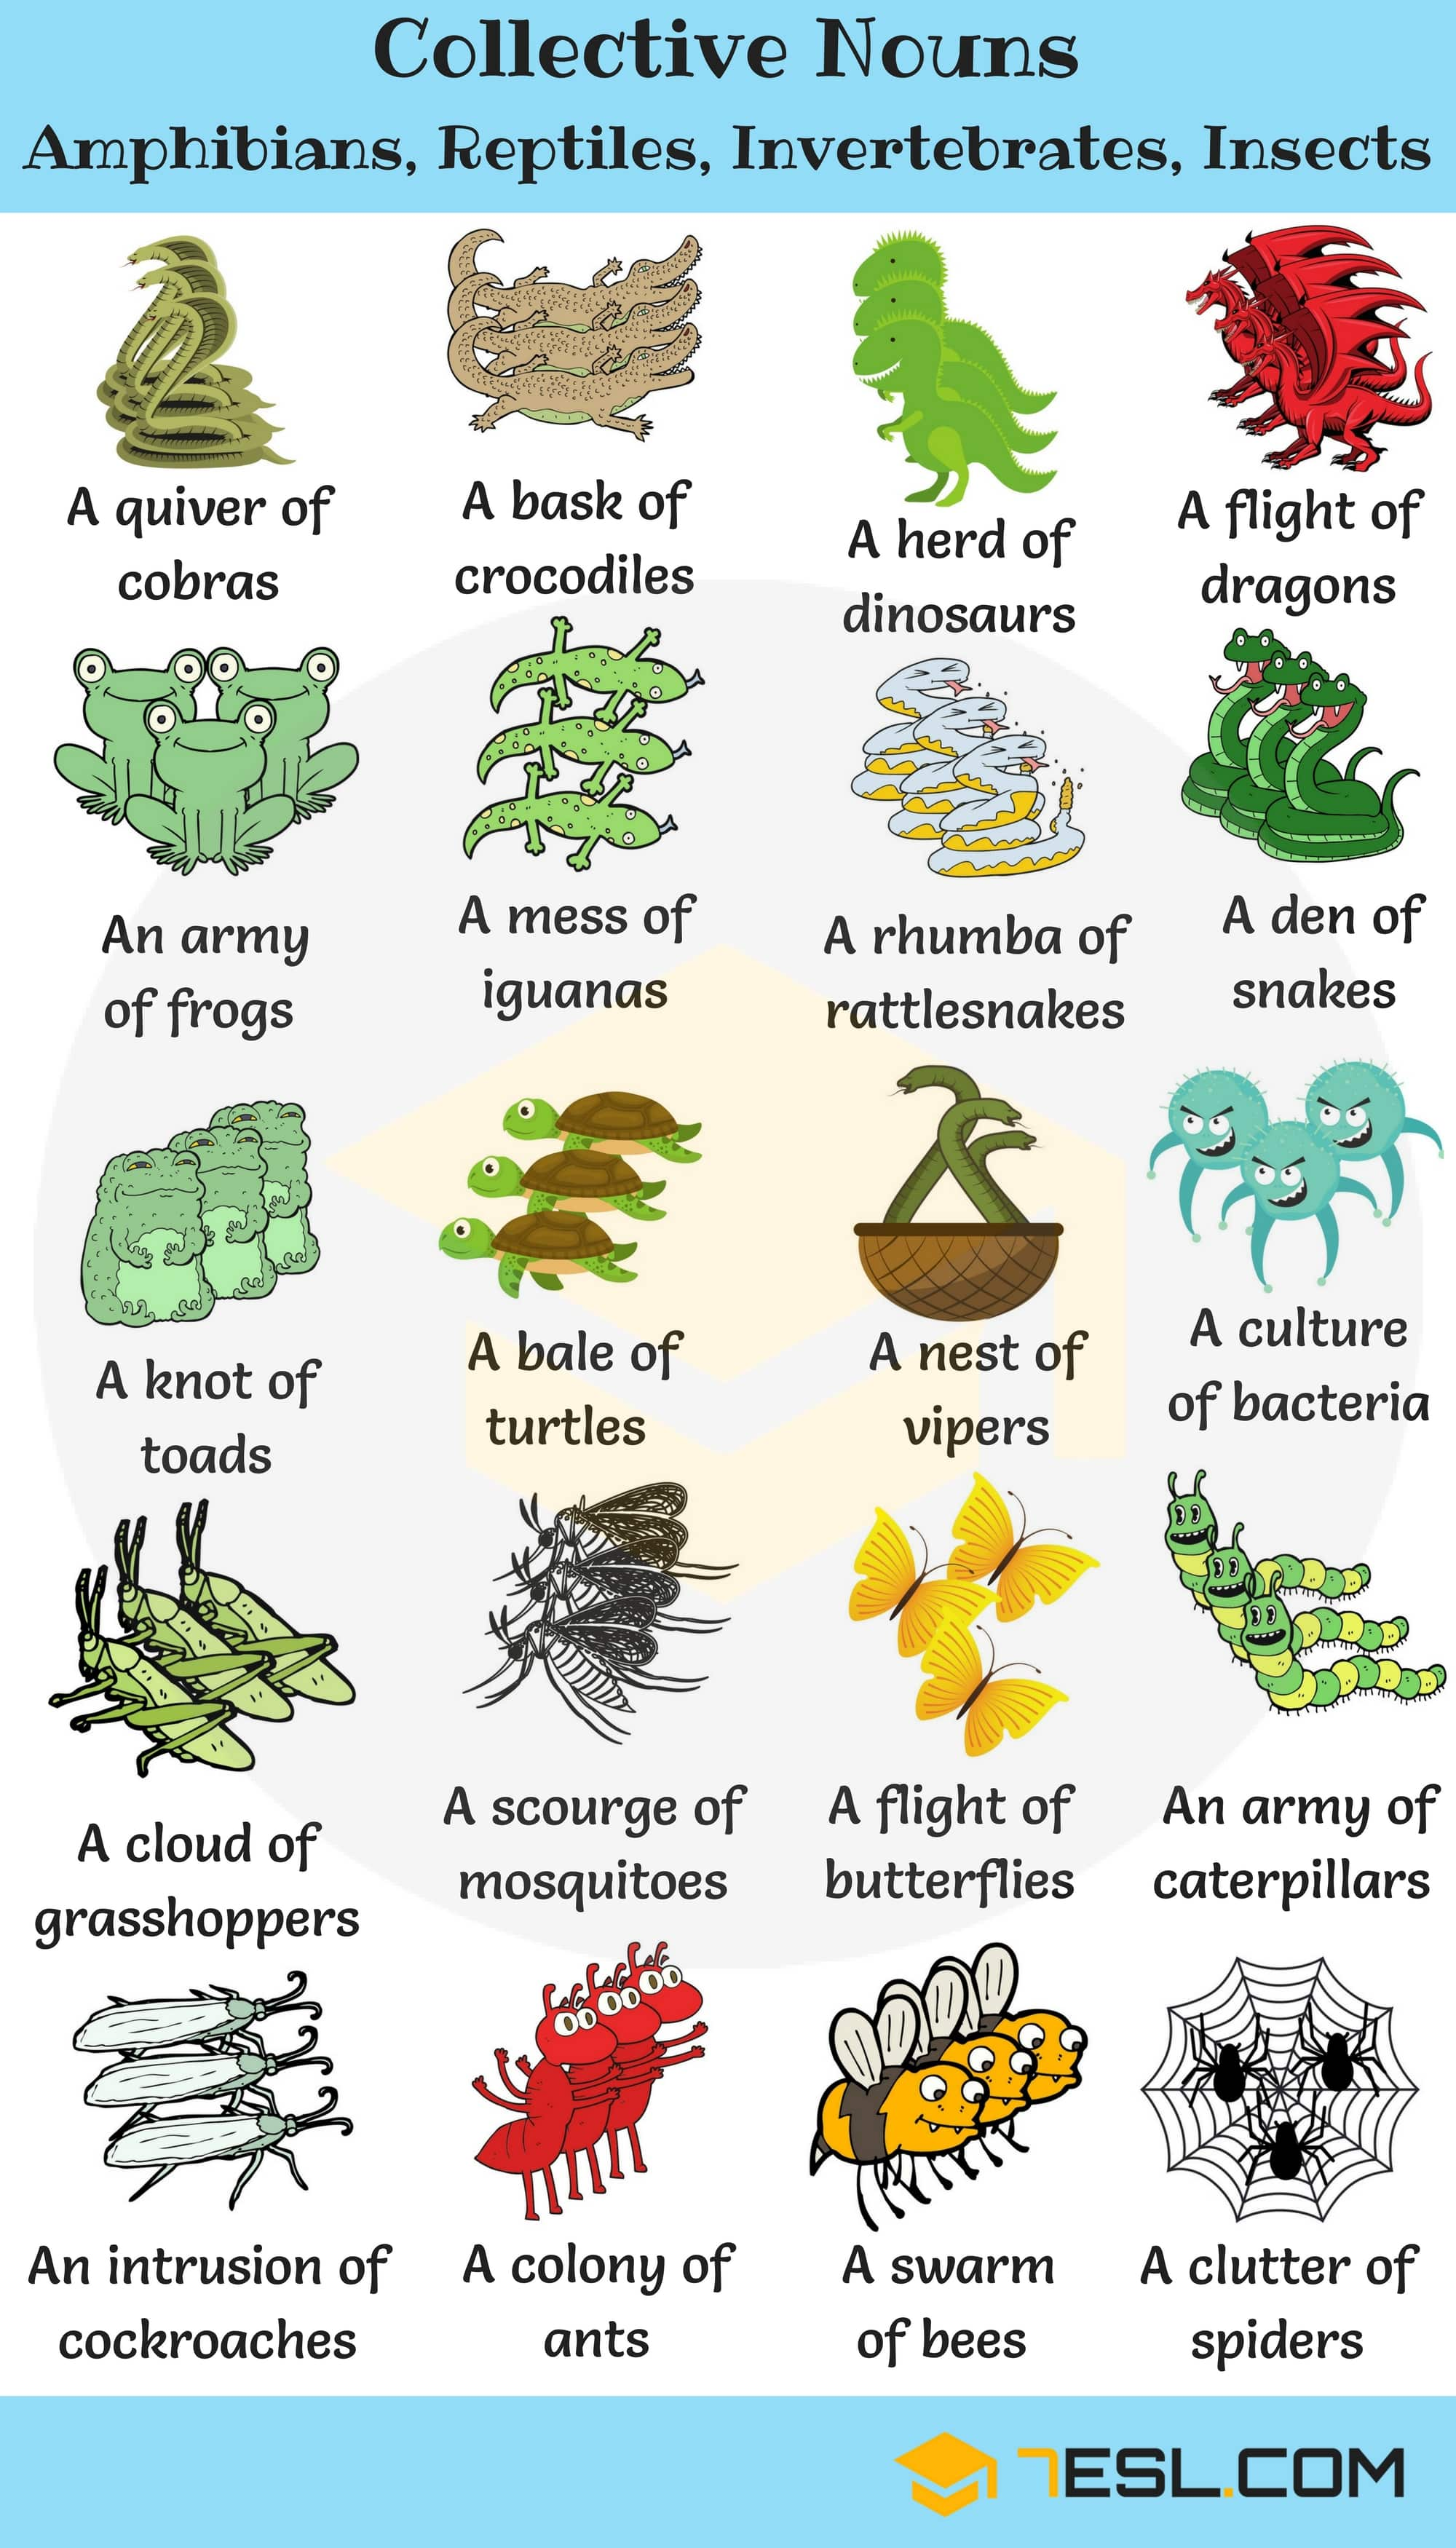 250+ Collective Nouns For Animals in English